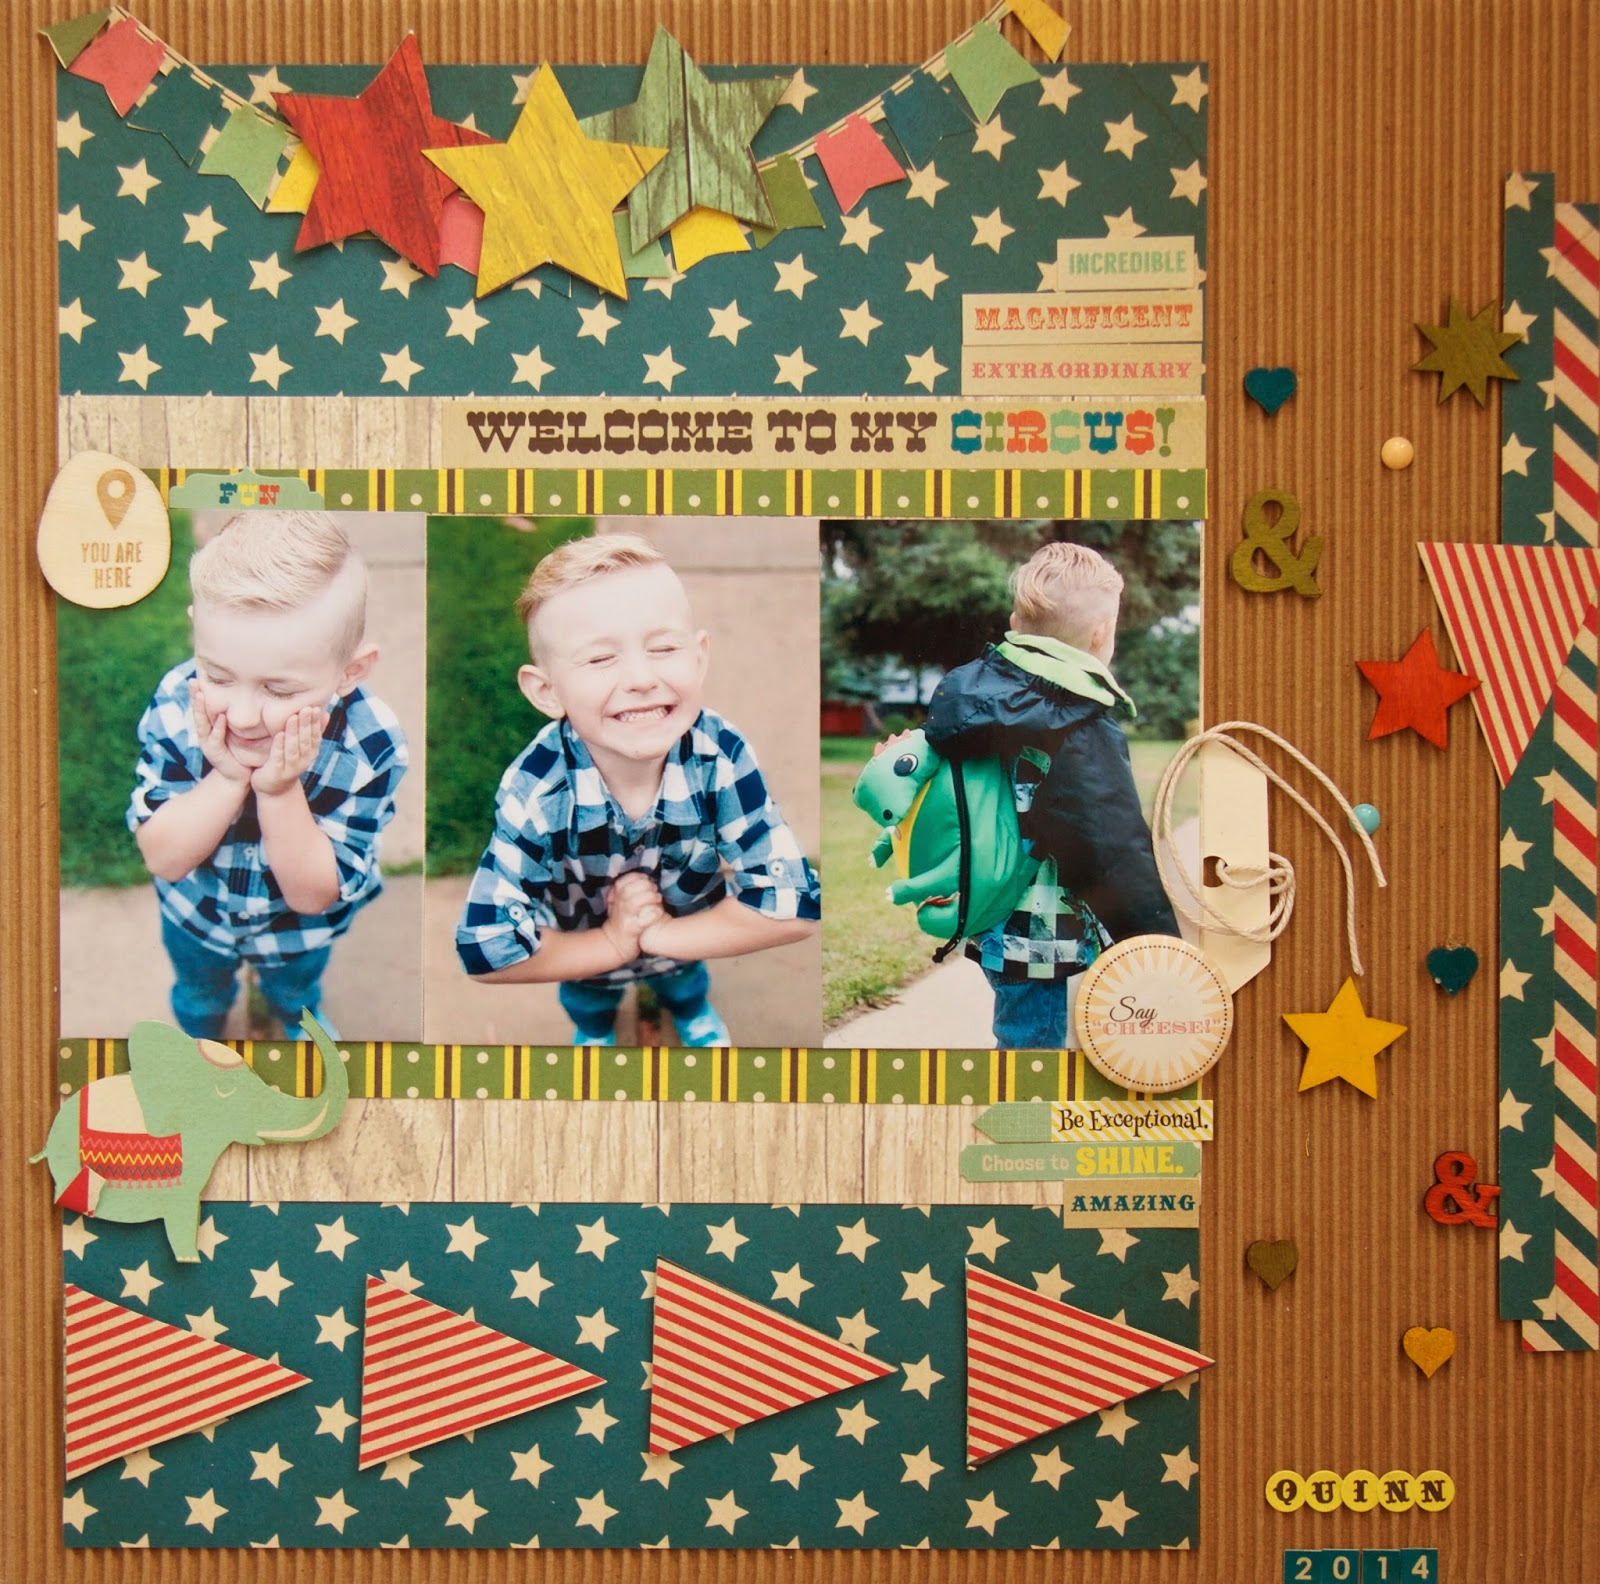 Scrapbook paper companies - Fancy Pants Designs Is One Of My Favorite Scrapbook Paper Companies And This Layout Is Created With The Everyday Circus Collection